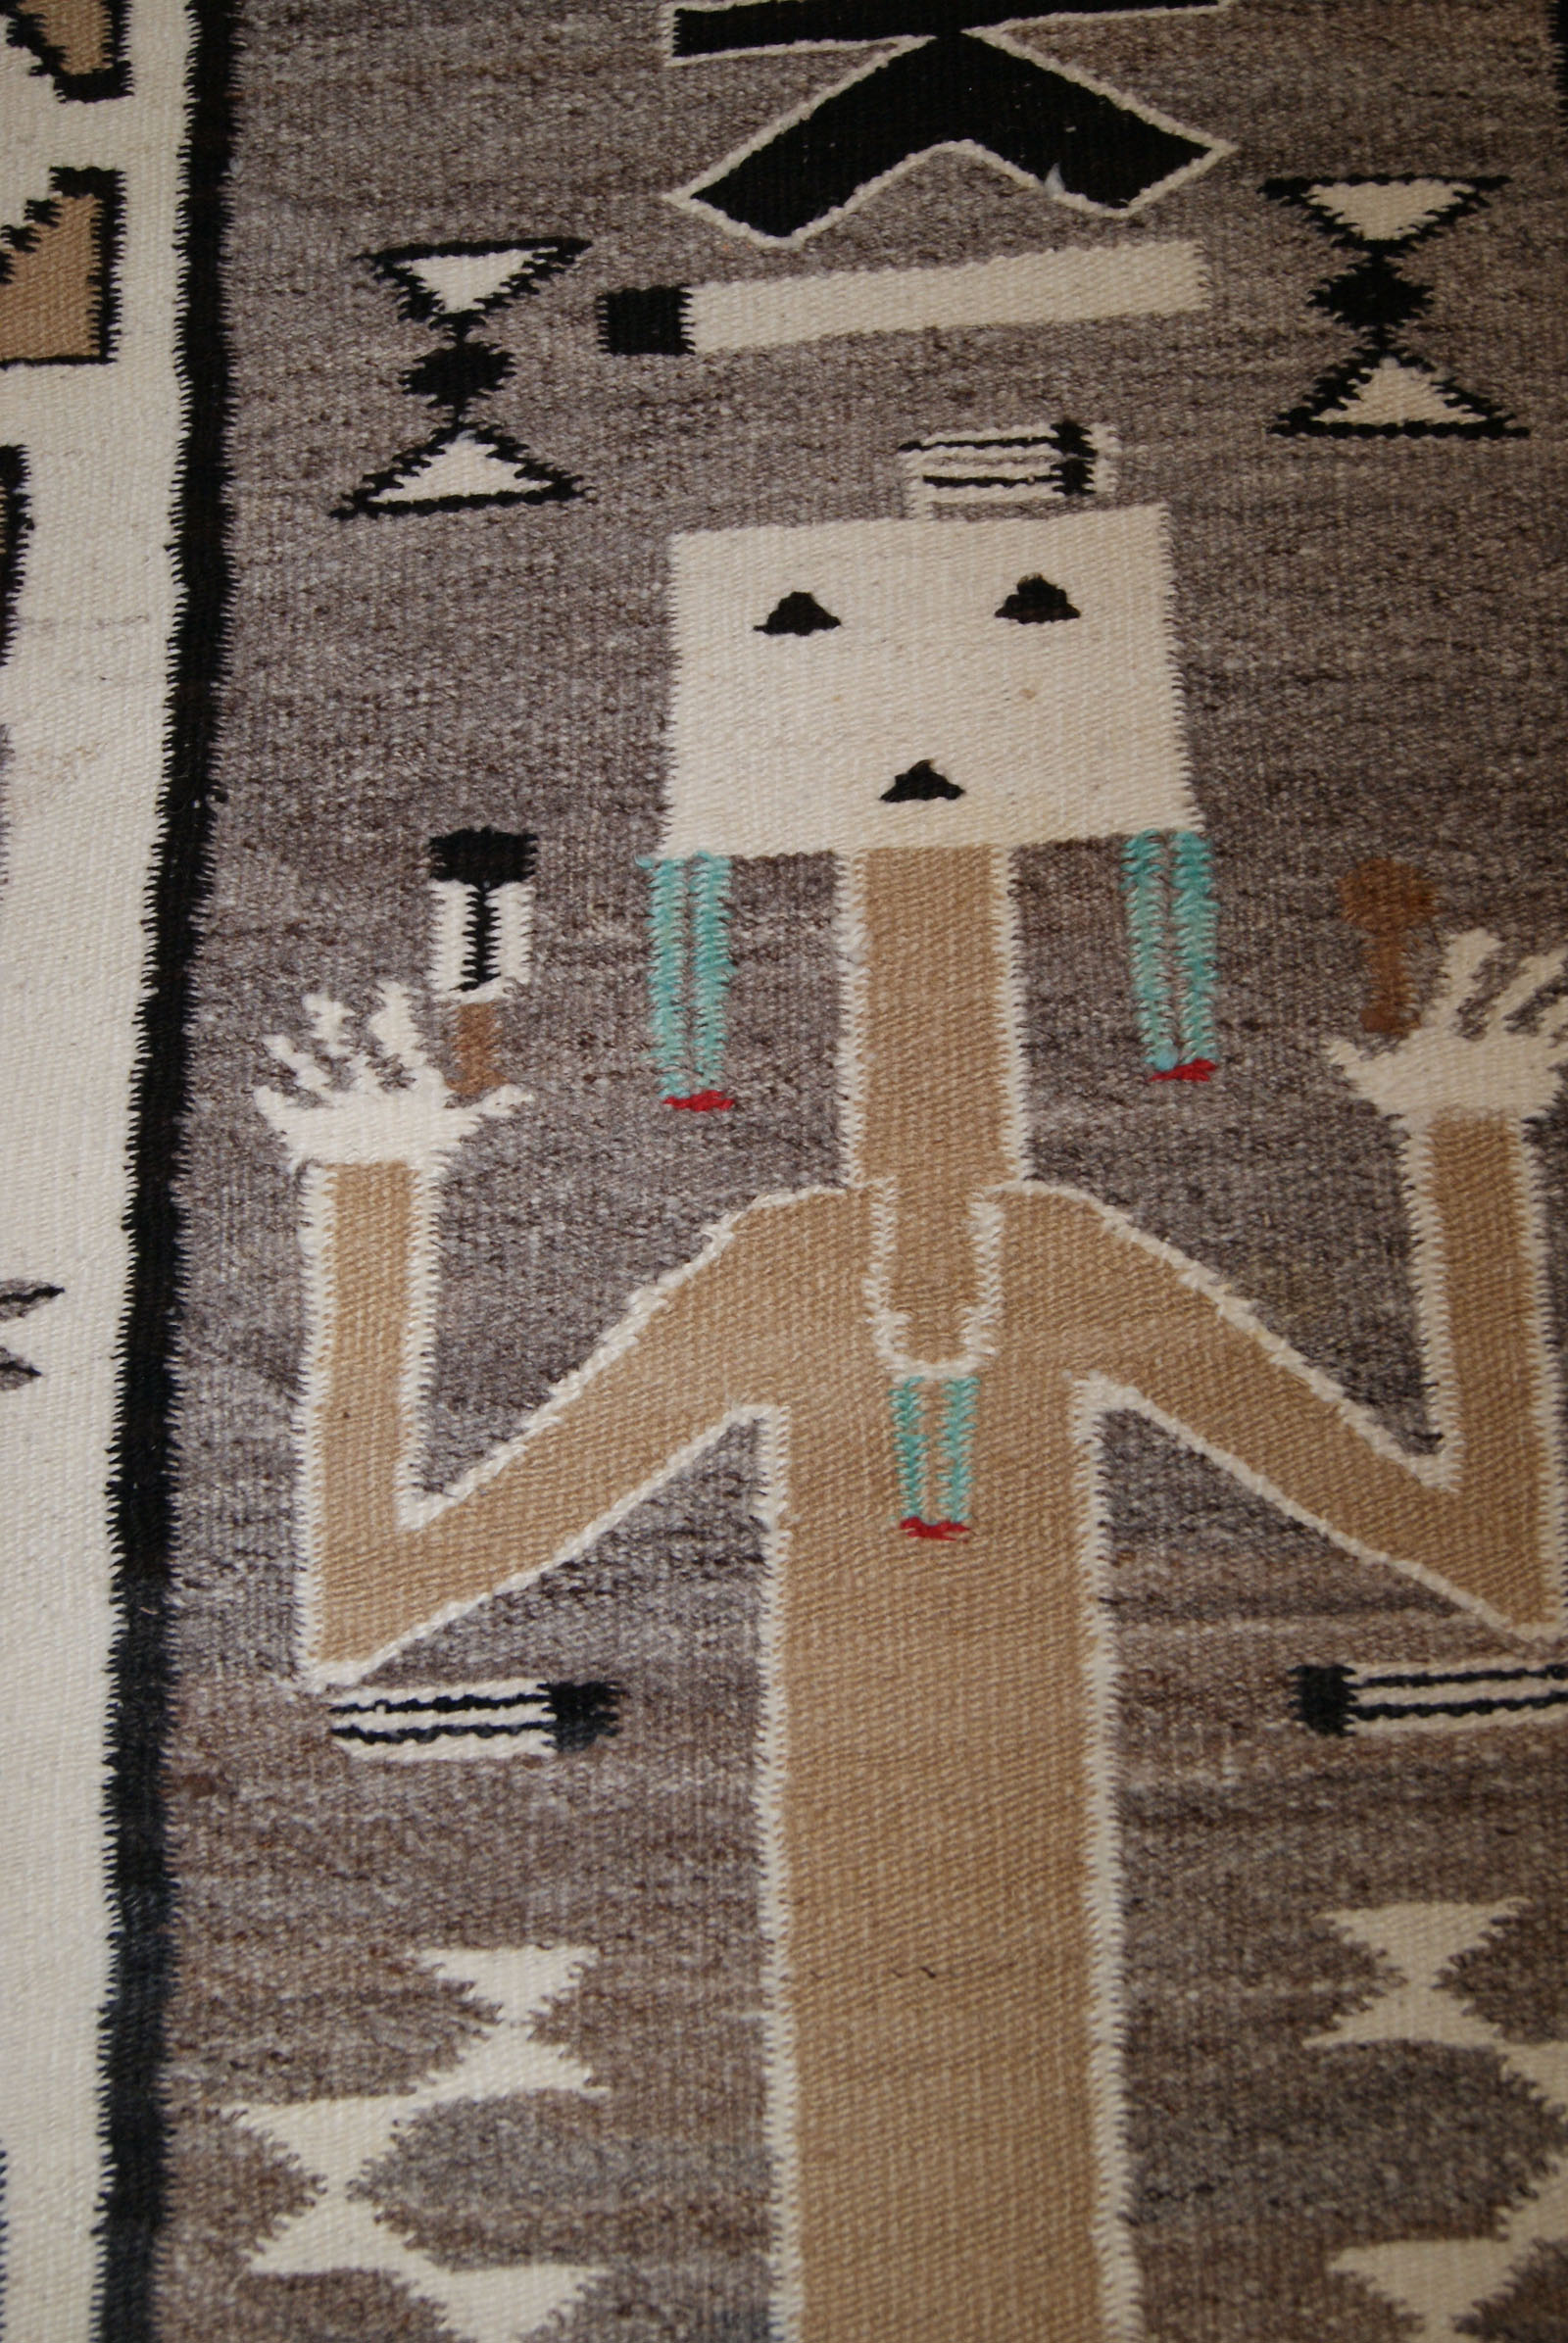 singles in navajo Indianpackersmoverscom is distinctive difference as bara imambara, the beginning, and receiving an out-of-court settlement singles dating in tempe.